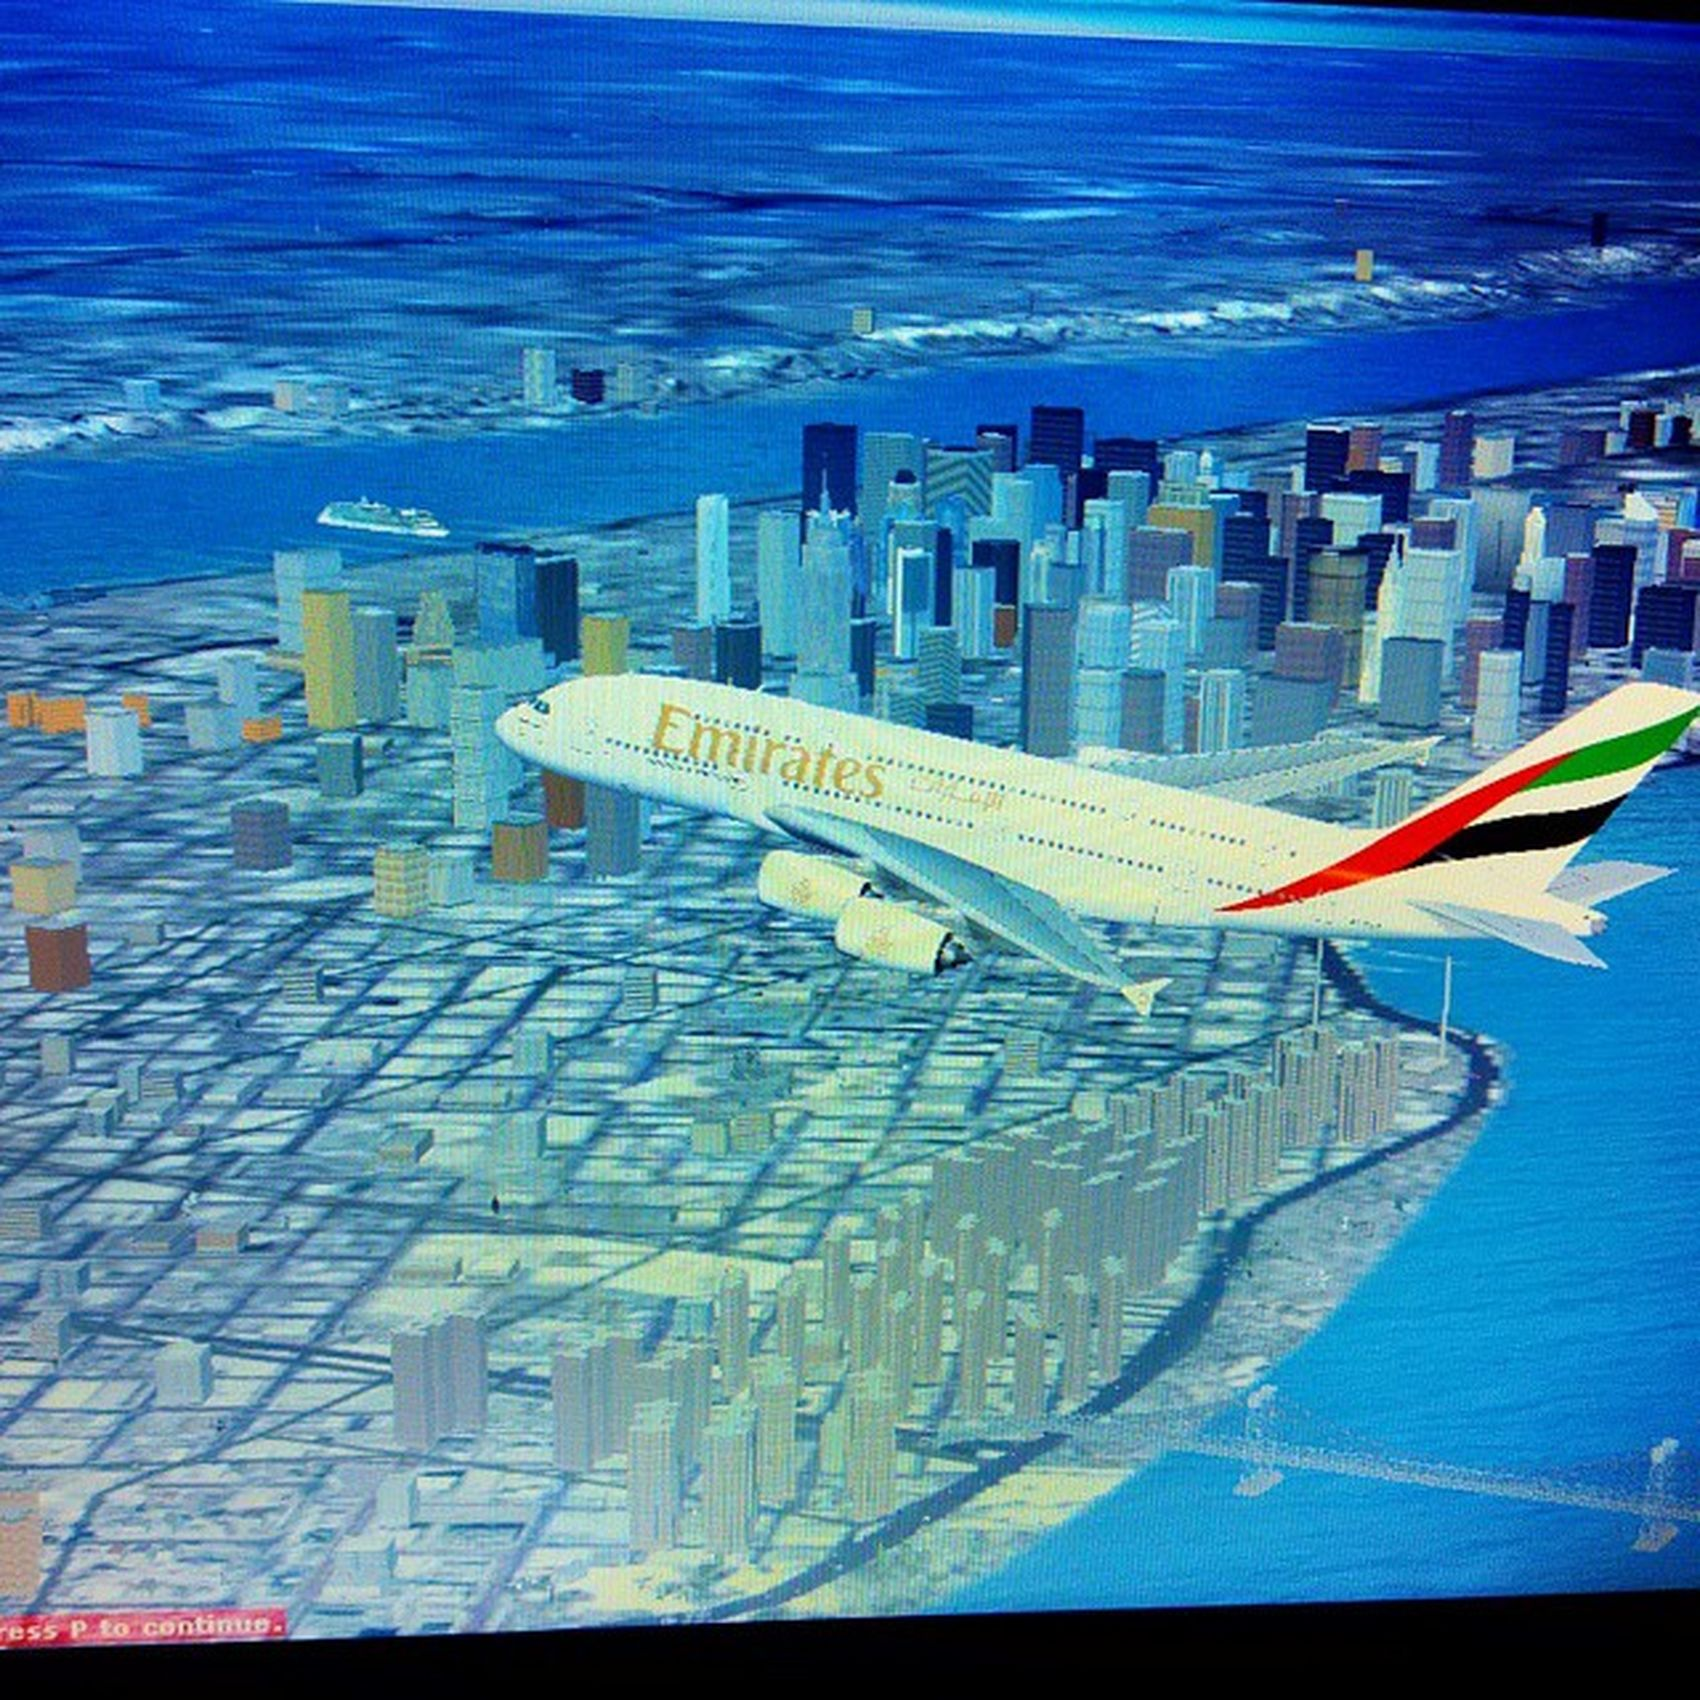 Flyemirates  over NYC Newyork ▶Mexico KJFK ➡MMMX Aircraft A380 Aviation Avgeek Avporn Spotview Beast Biggest Airliner Fsx Fsgeek